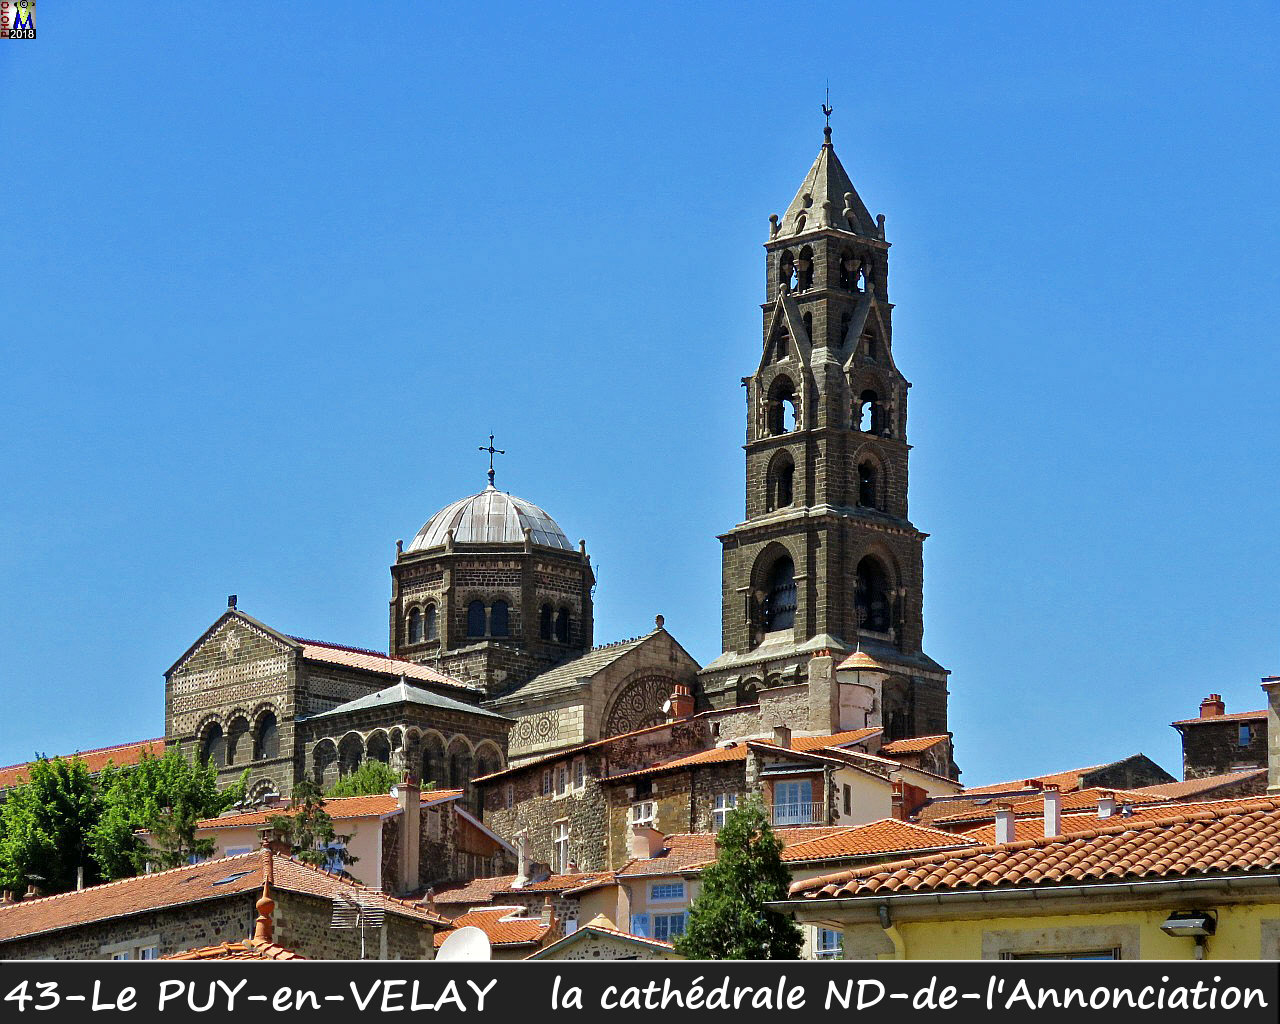 43PUY-EN-VELAY_cathedrale_108.jpg